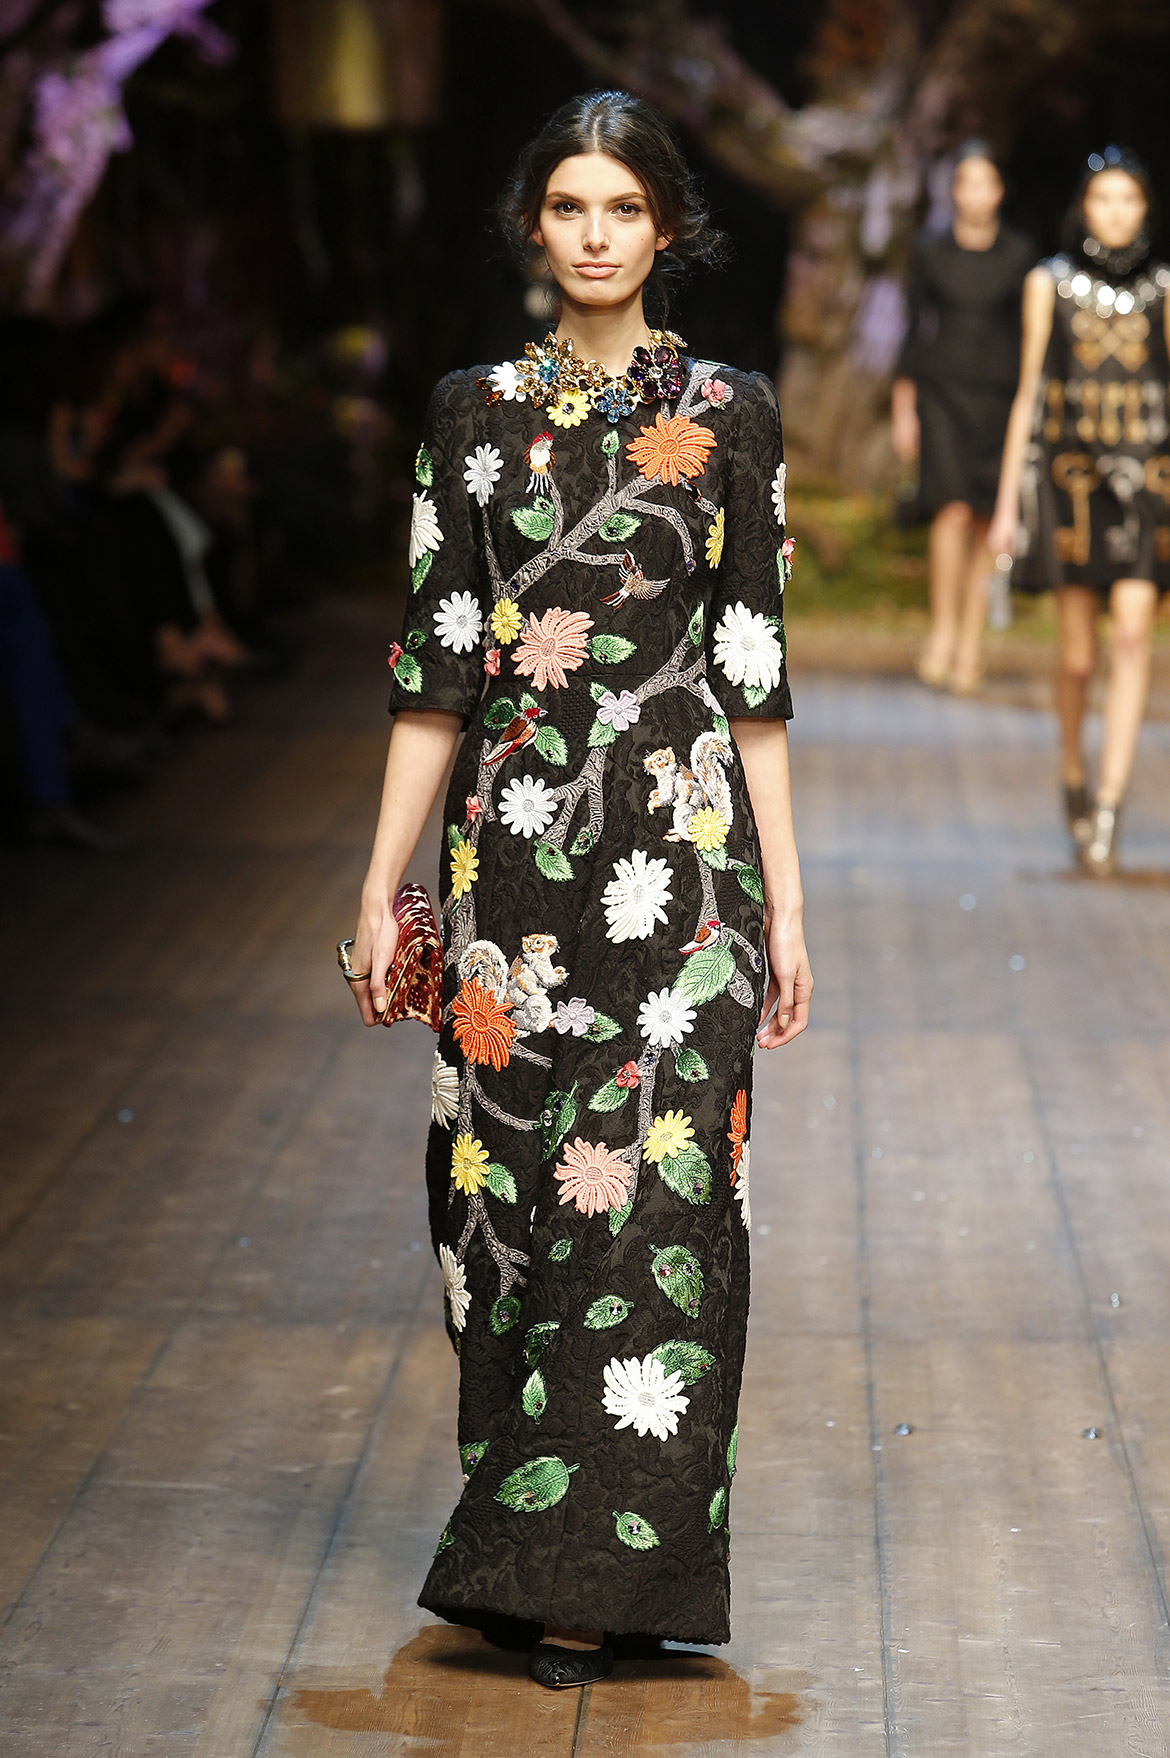 dolce-and-gabbana-fw-2014-2015-women-fashion-show-runway (4)